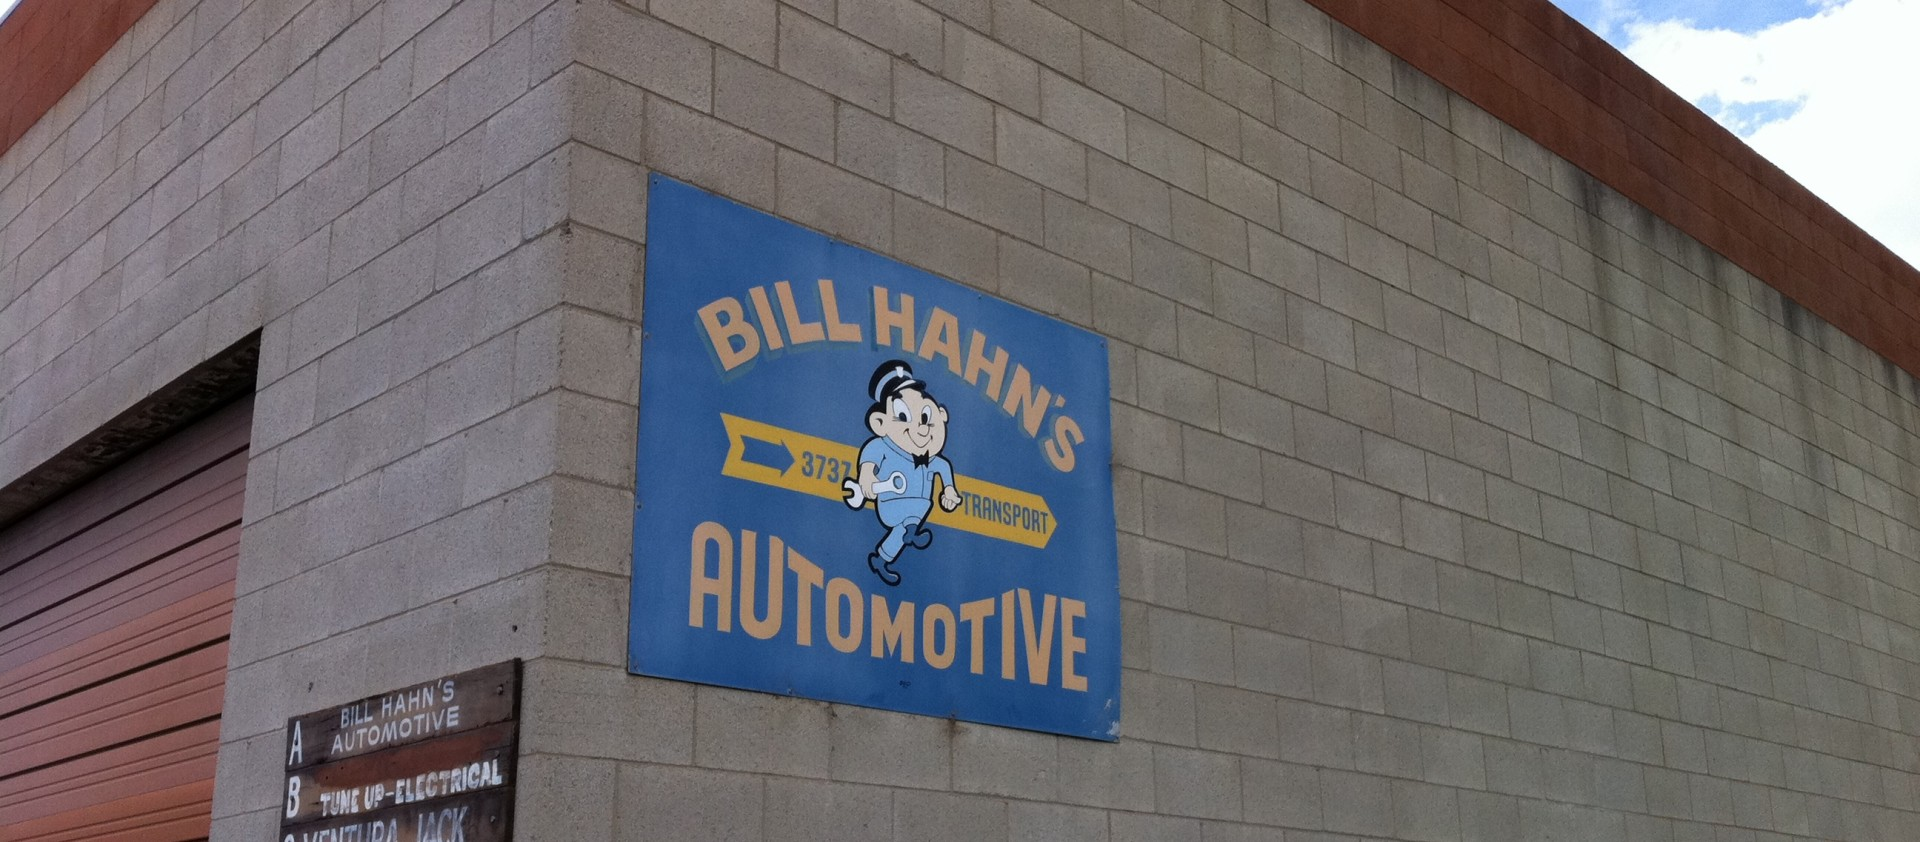 Bill Hahn's Automotive